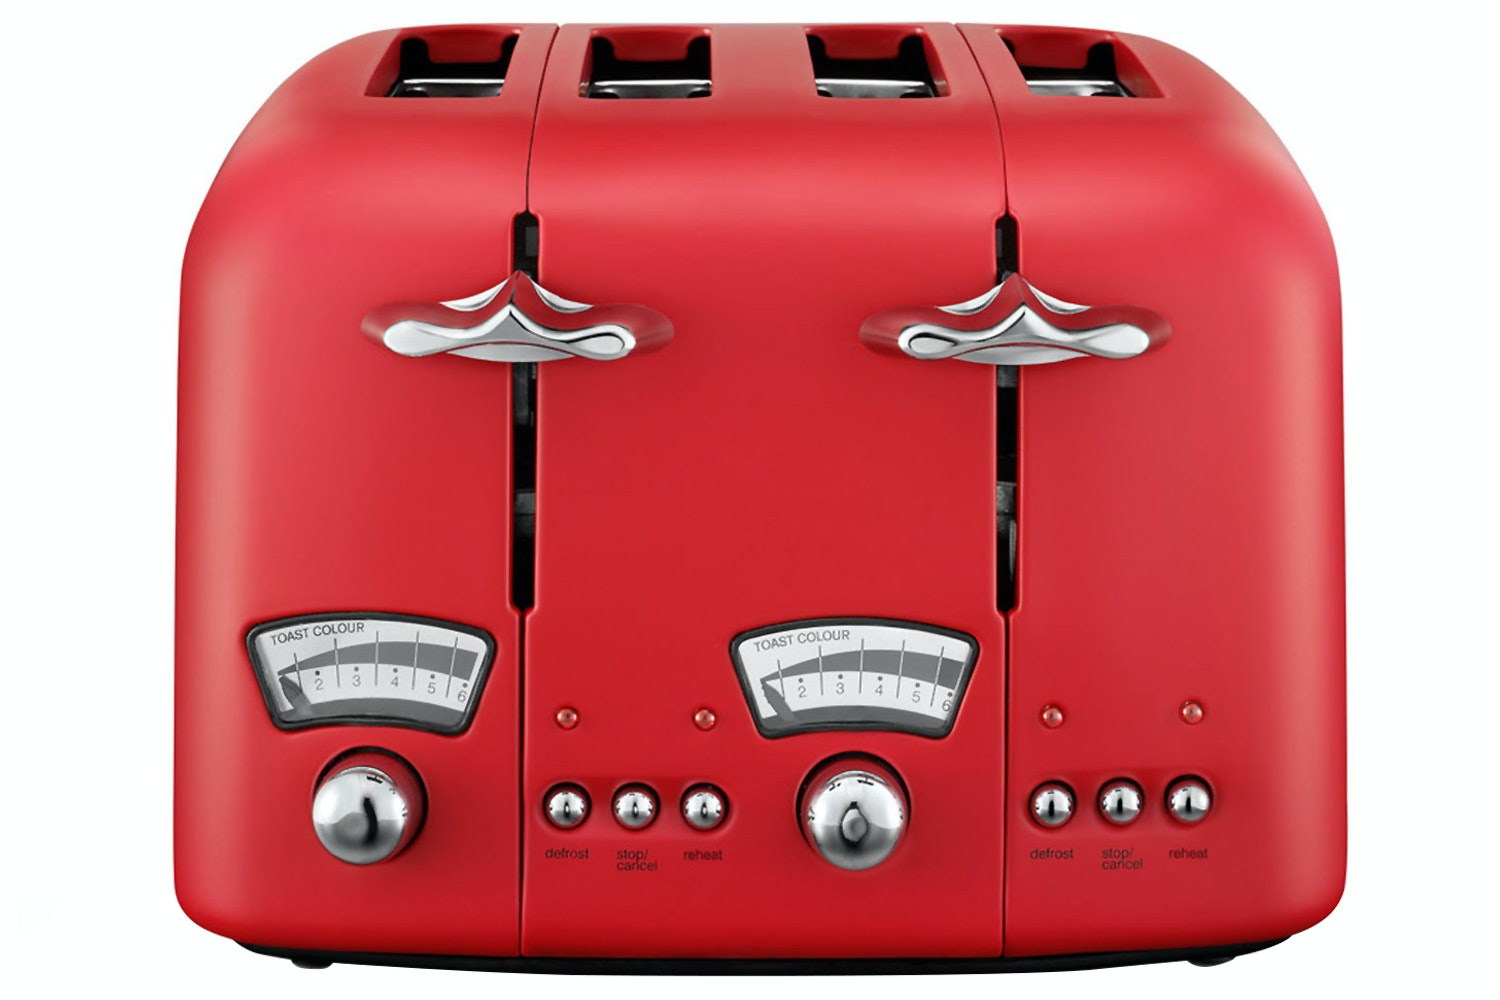 Delonghi Argento Red 4 Slice Toaster